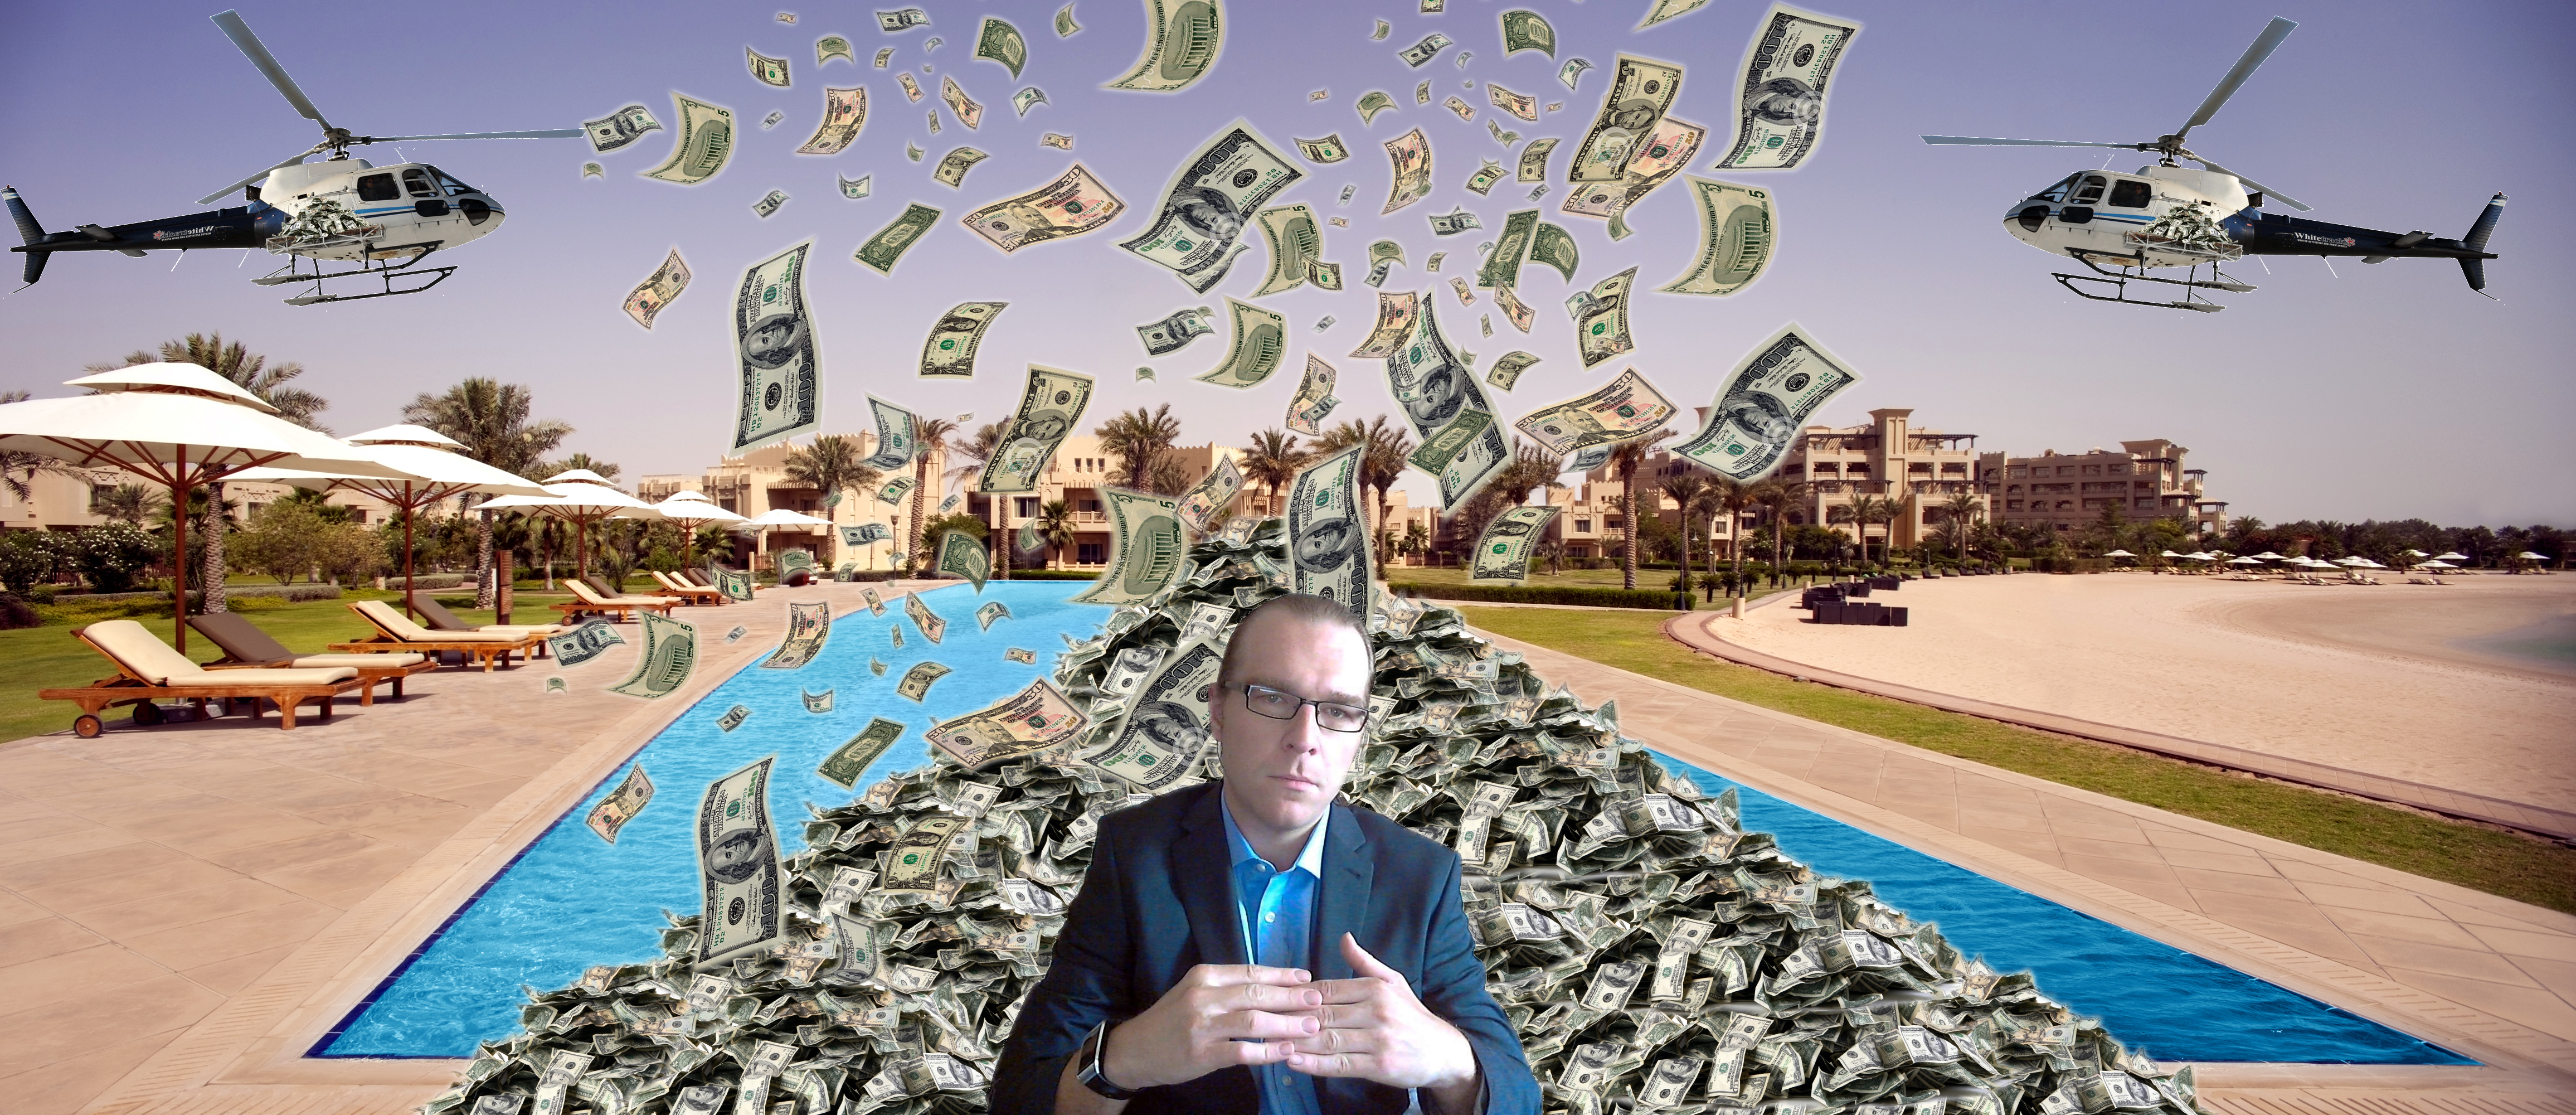 pool money by helicopter